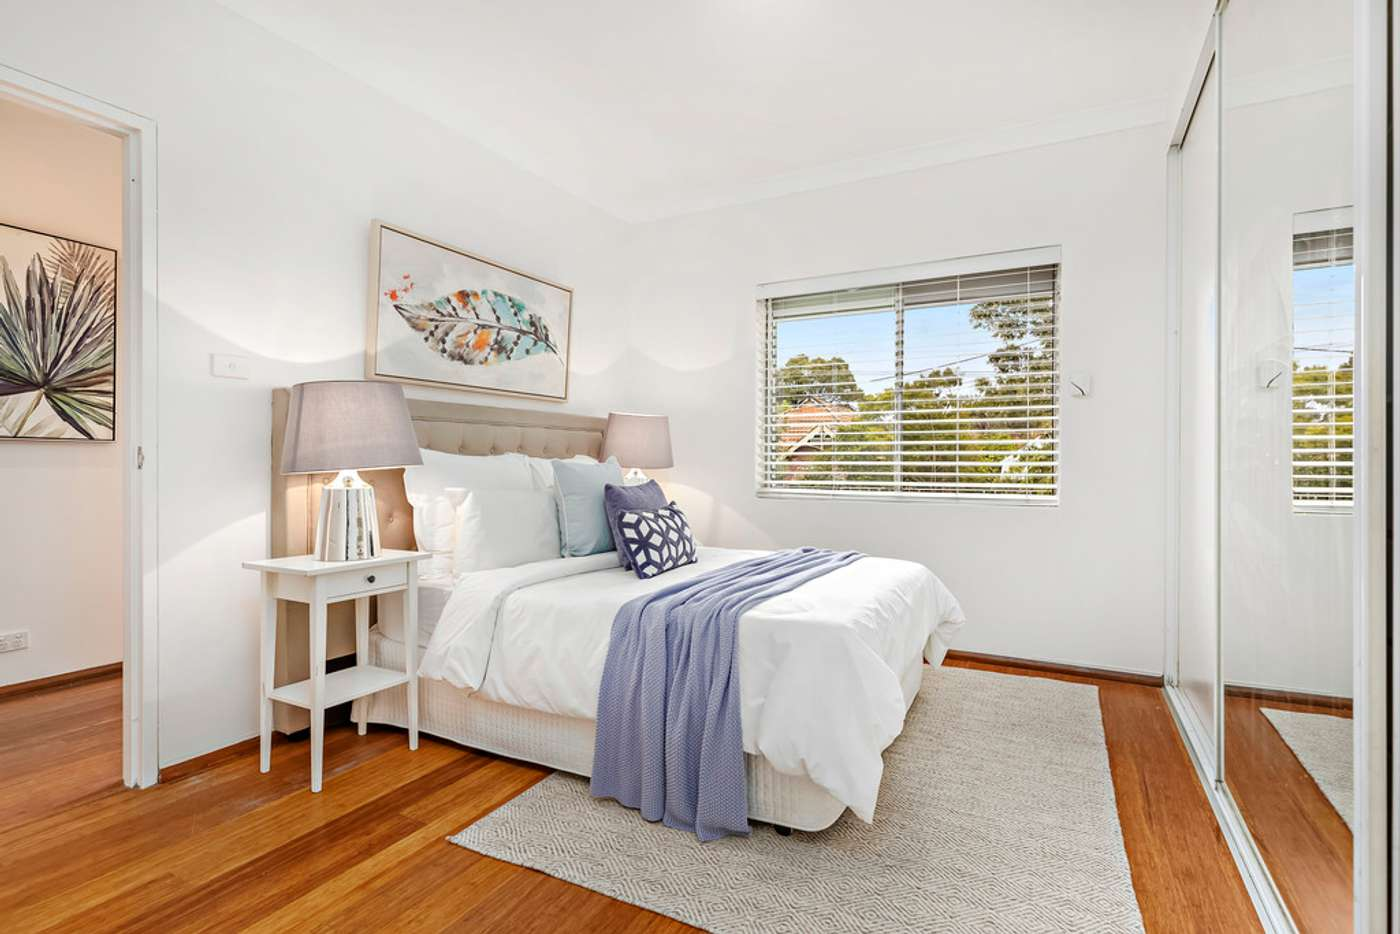 Fifth view of Homely house listing, 19 John Street, Ashfield NSW 2131